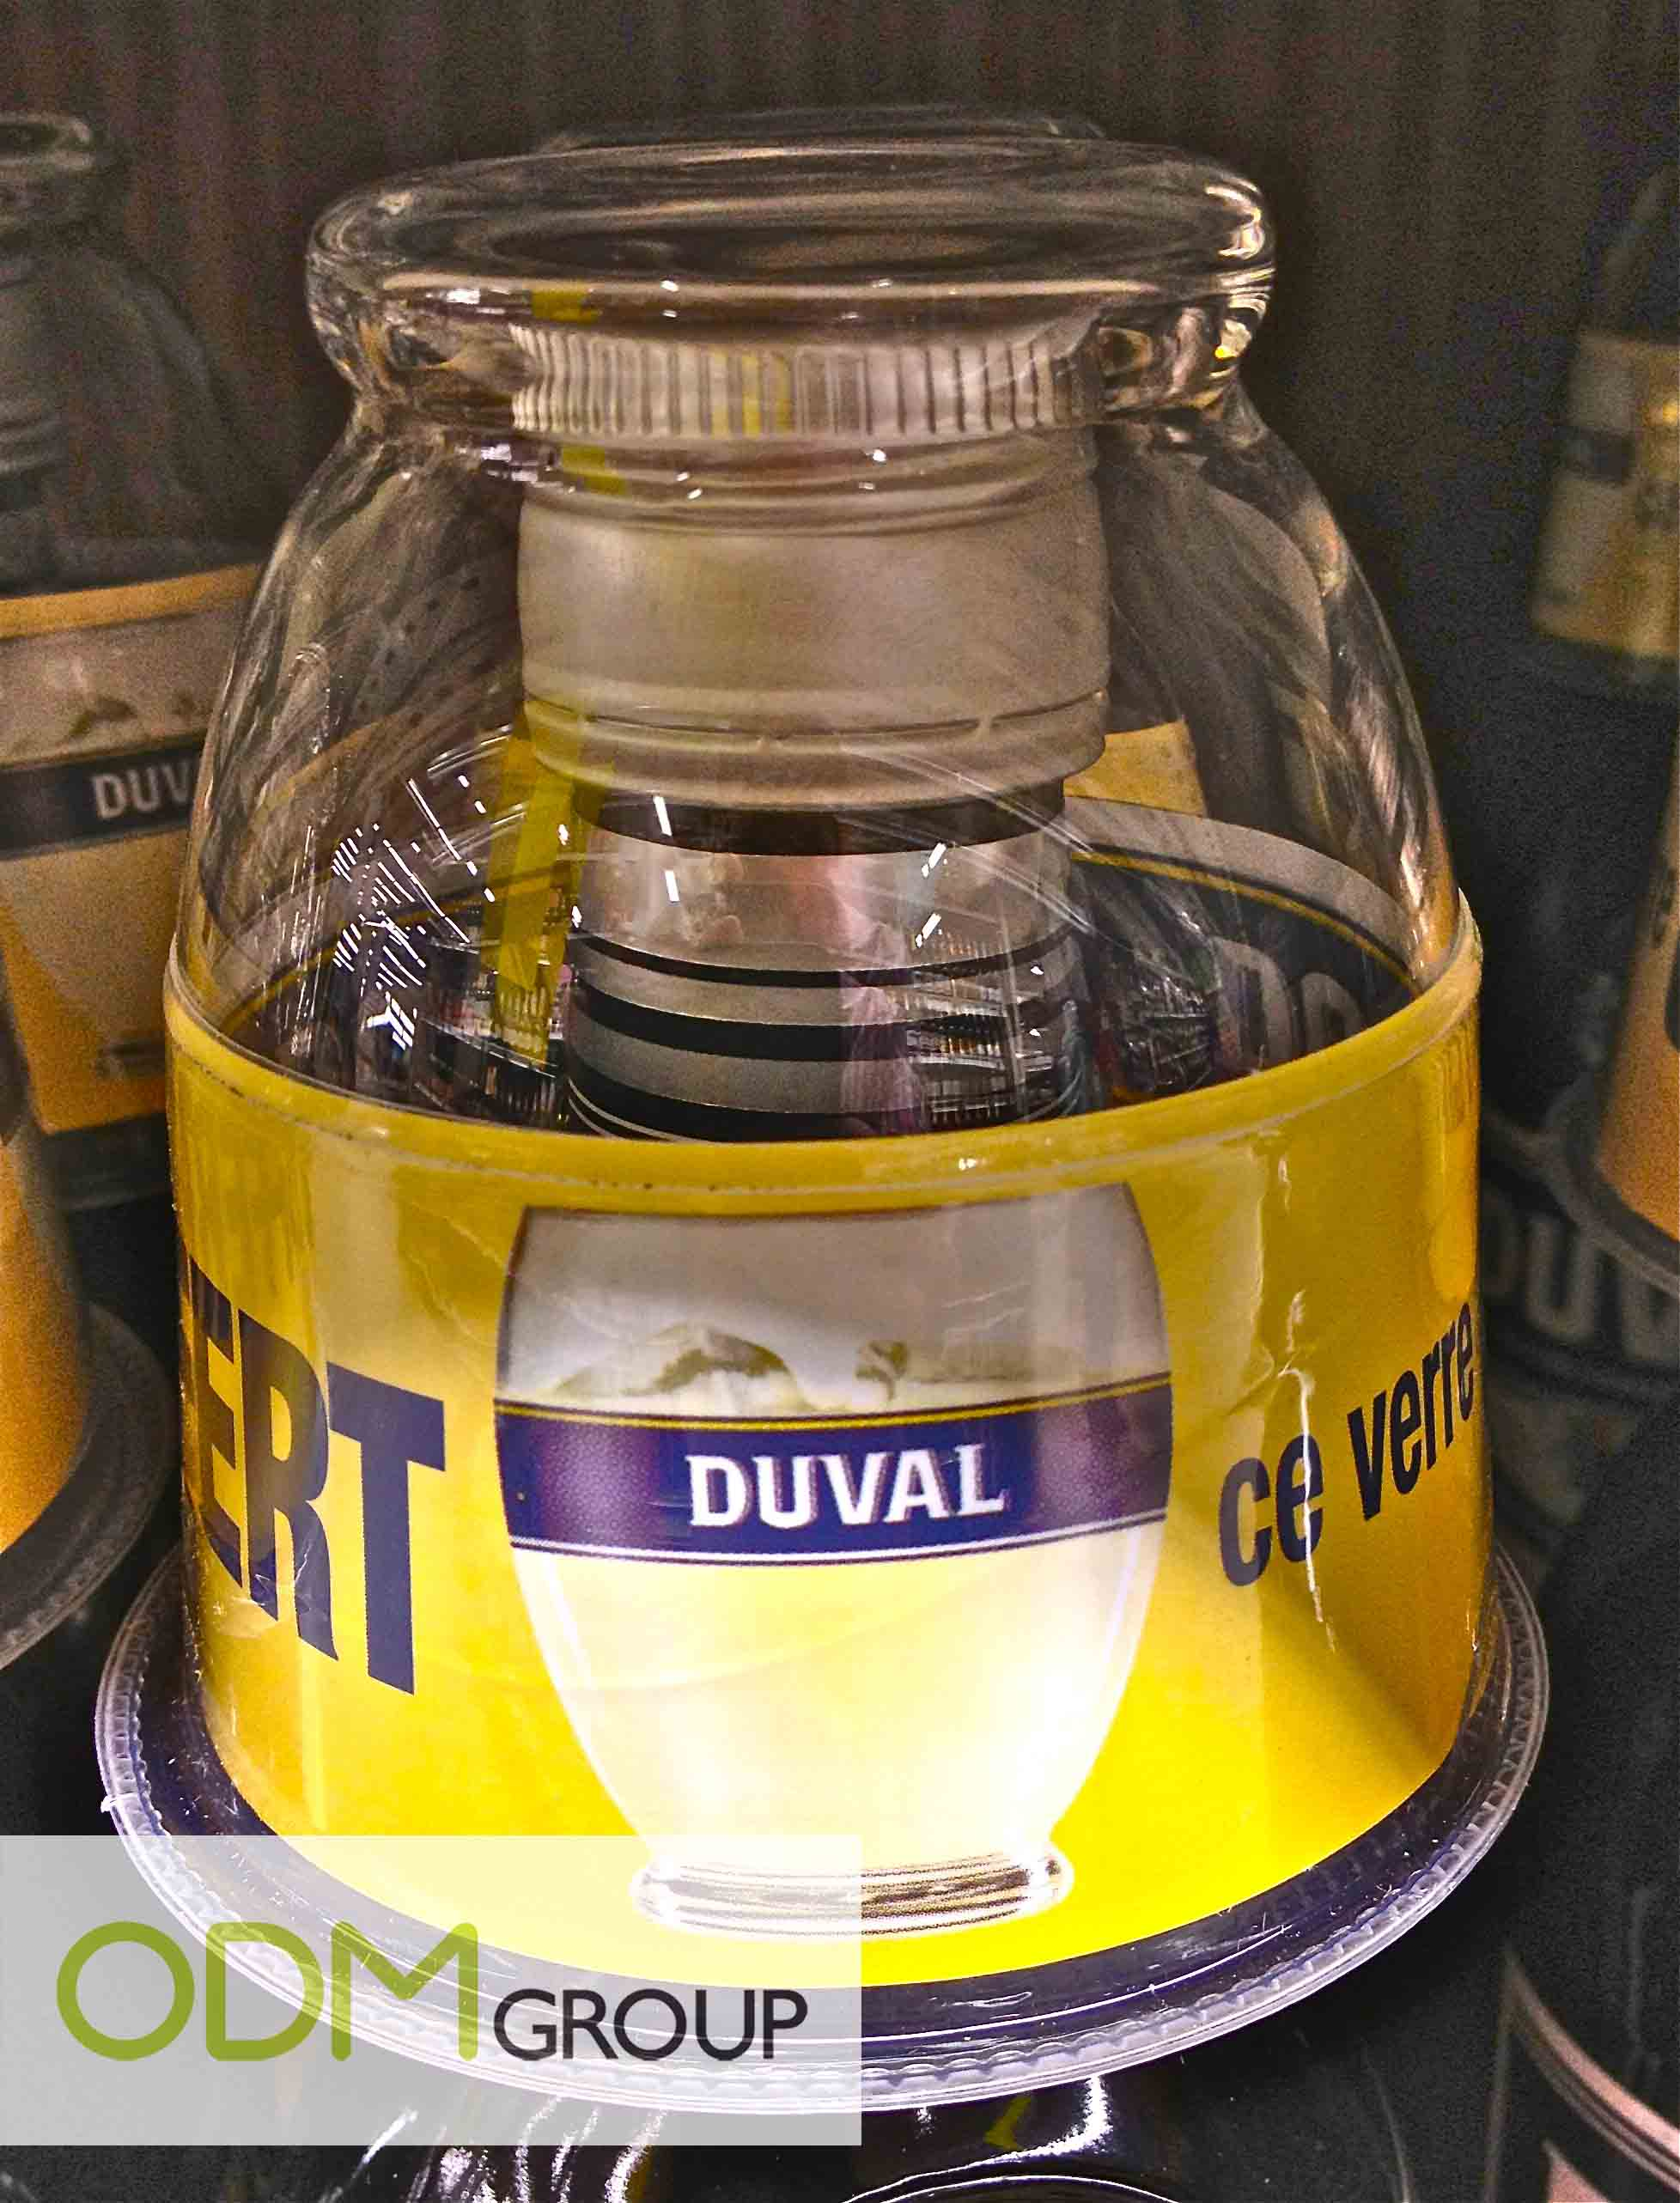 Duval Promotion France - Glasses for Pastis